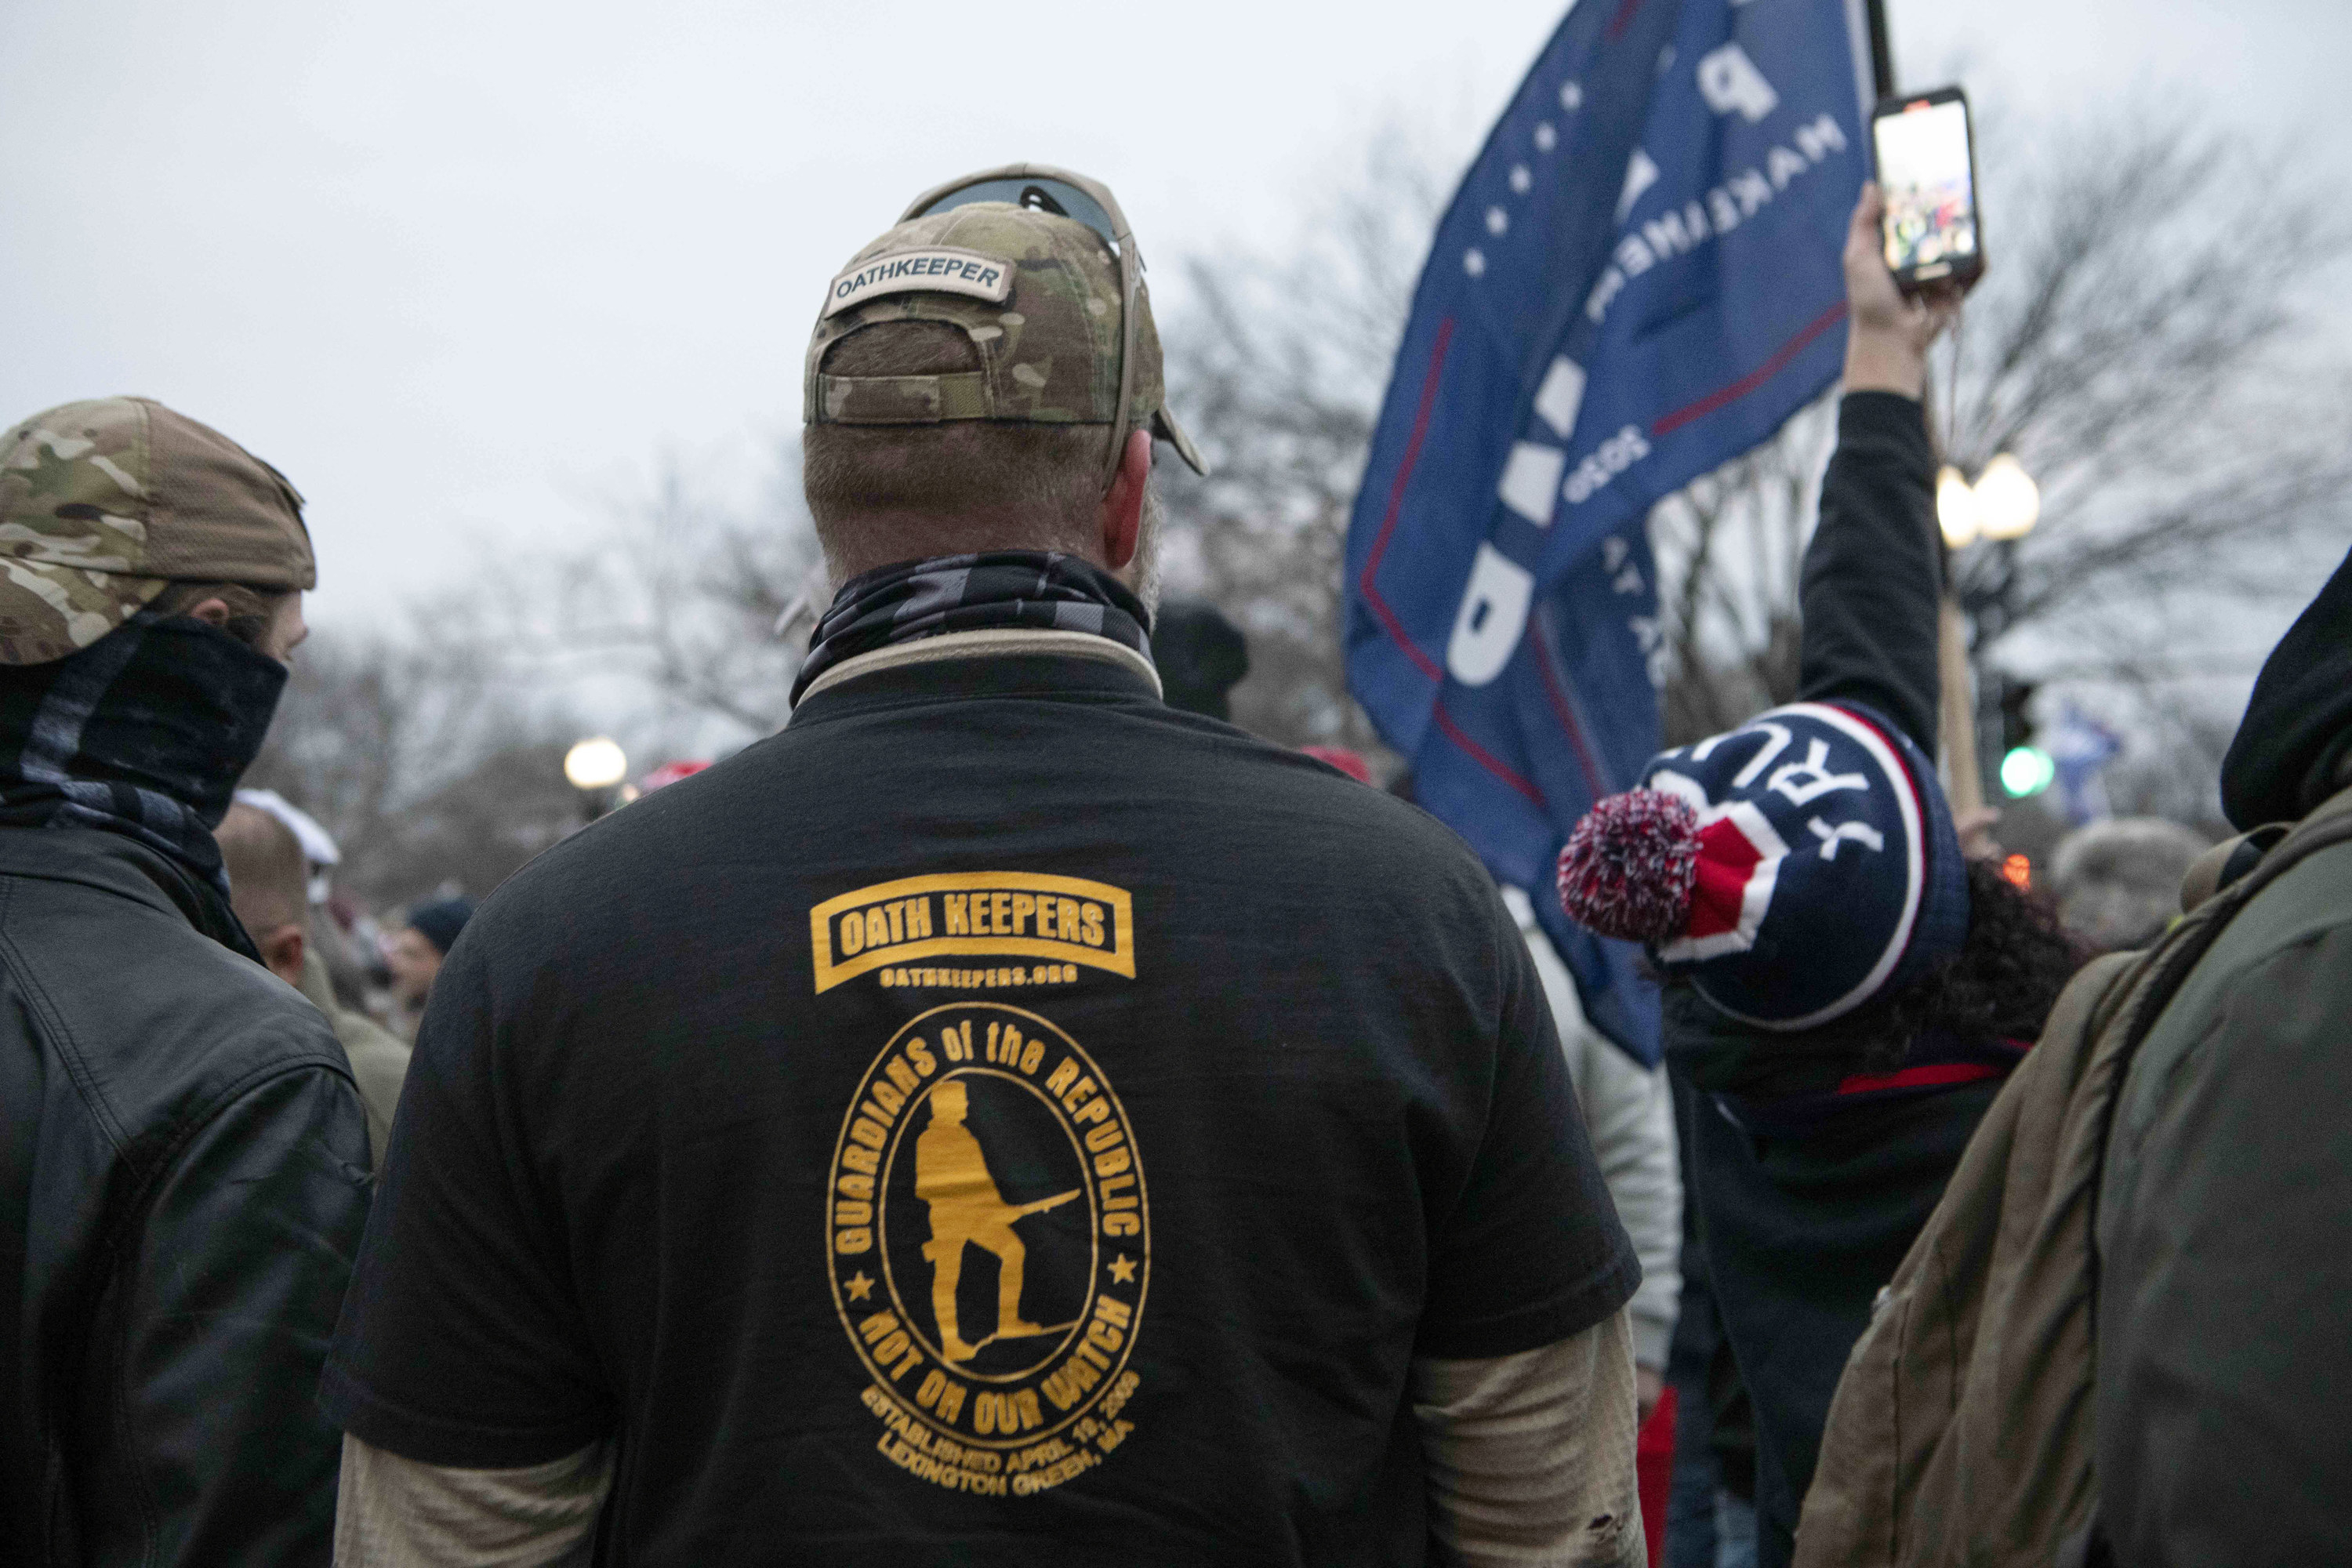 """A man with his back to the camera wears a T-shirt that reads """"Oath Keepers: Guardians of the Republic —Not on Our Watch"""""""